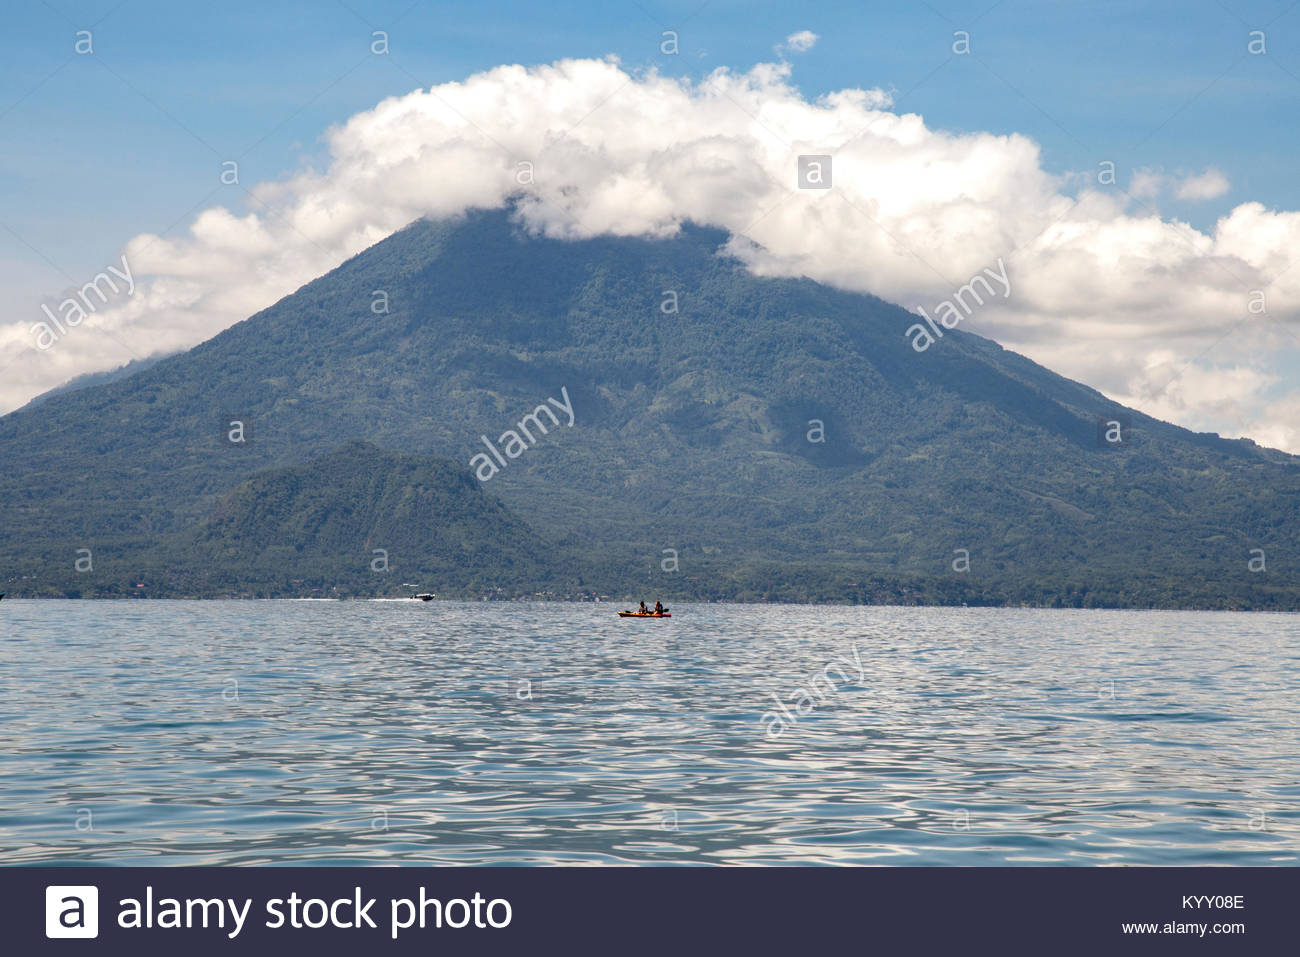 Scenic view of Lake Atitlan against mountains and cloudy sky - Stock Image